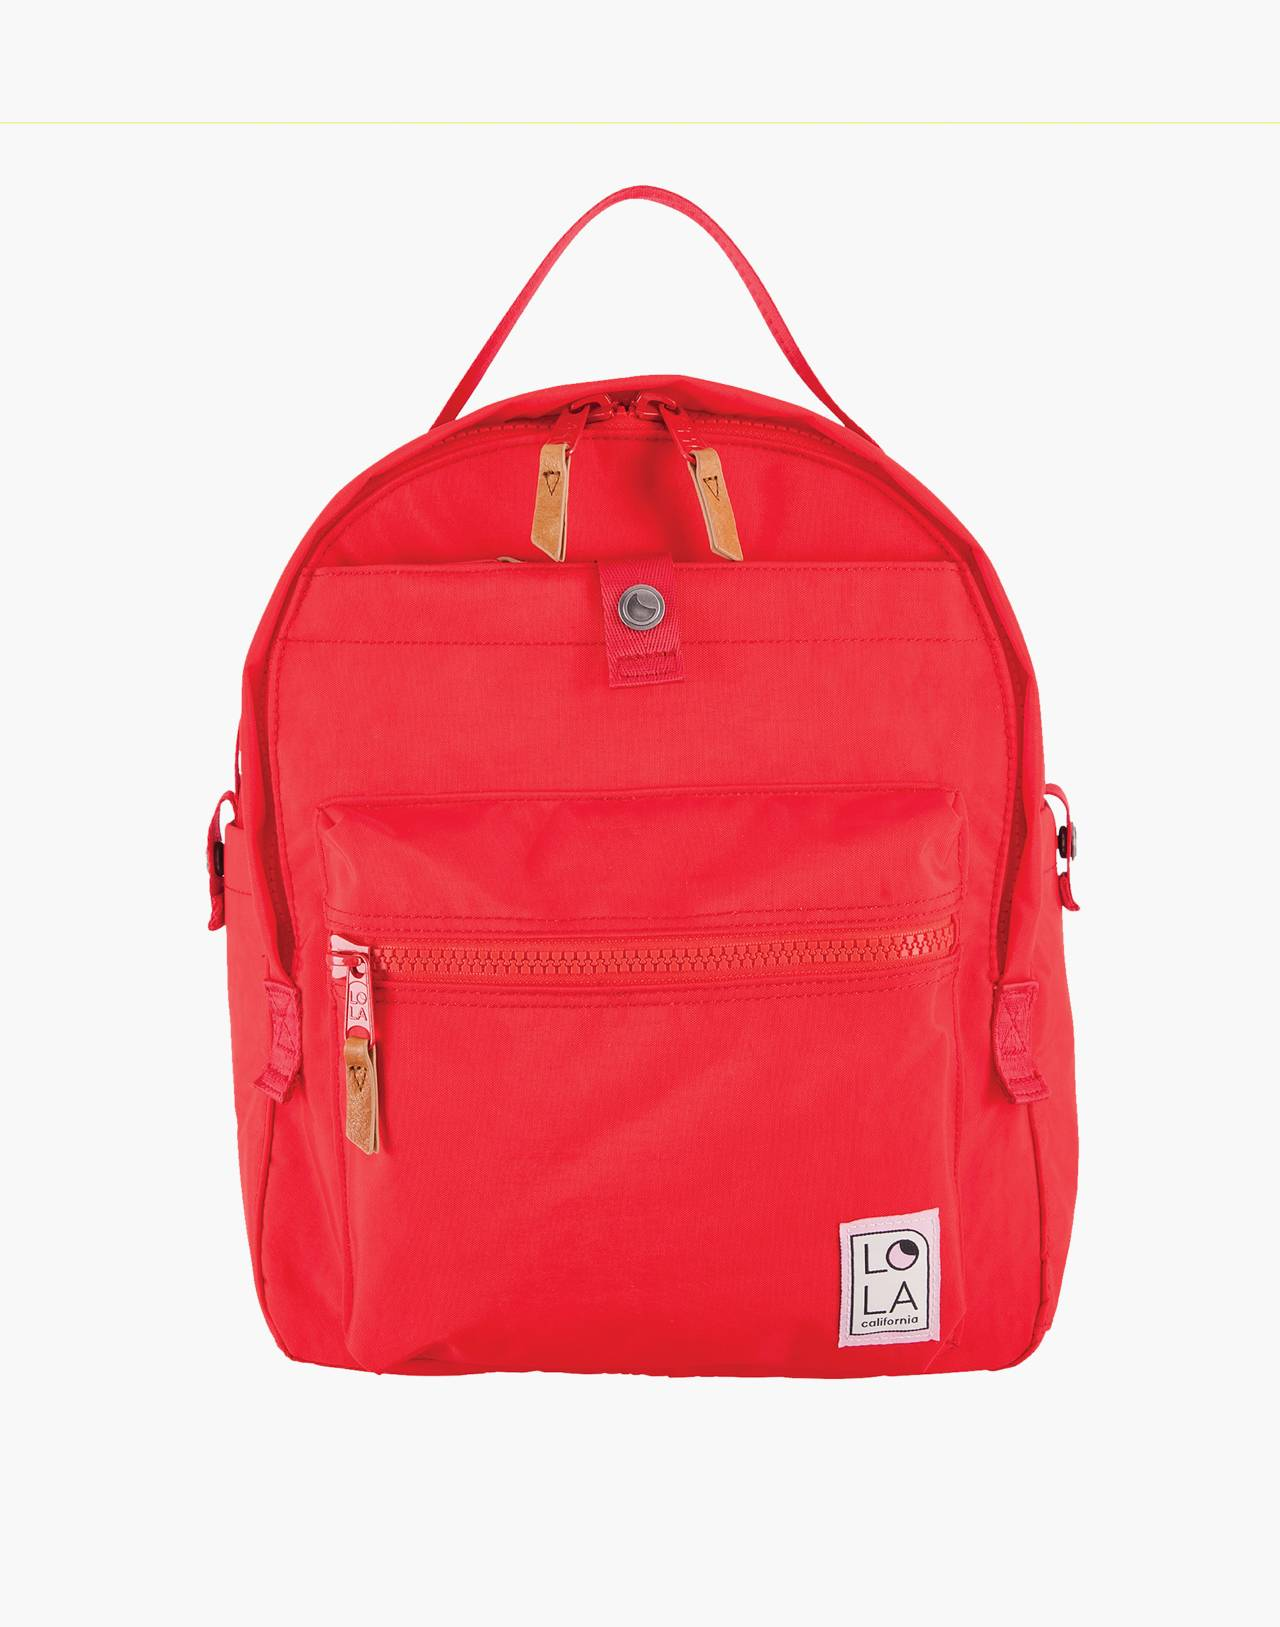 LOLA™ Mondo Escapist Large Backpack in red image 1